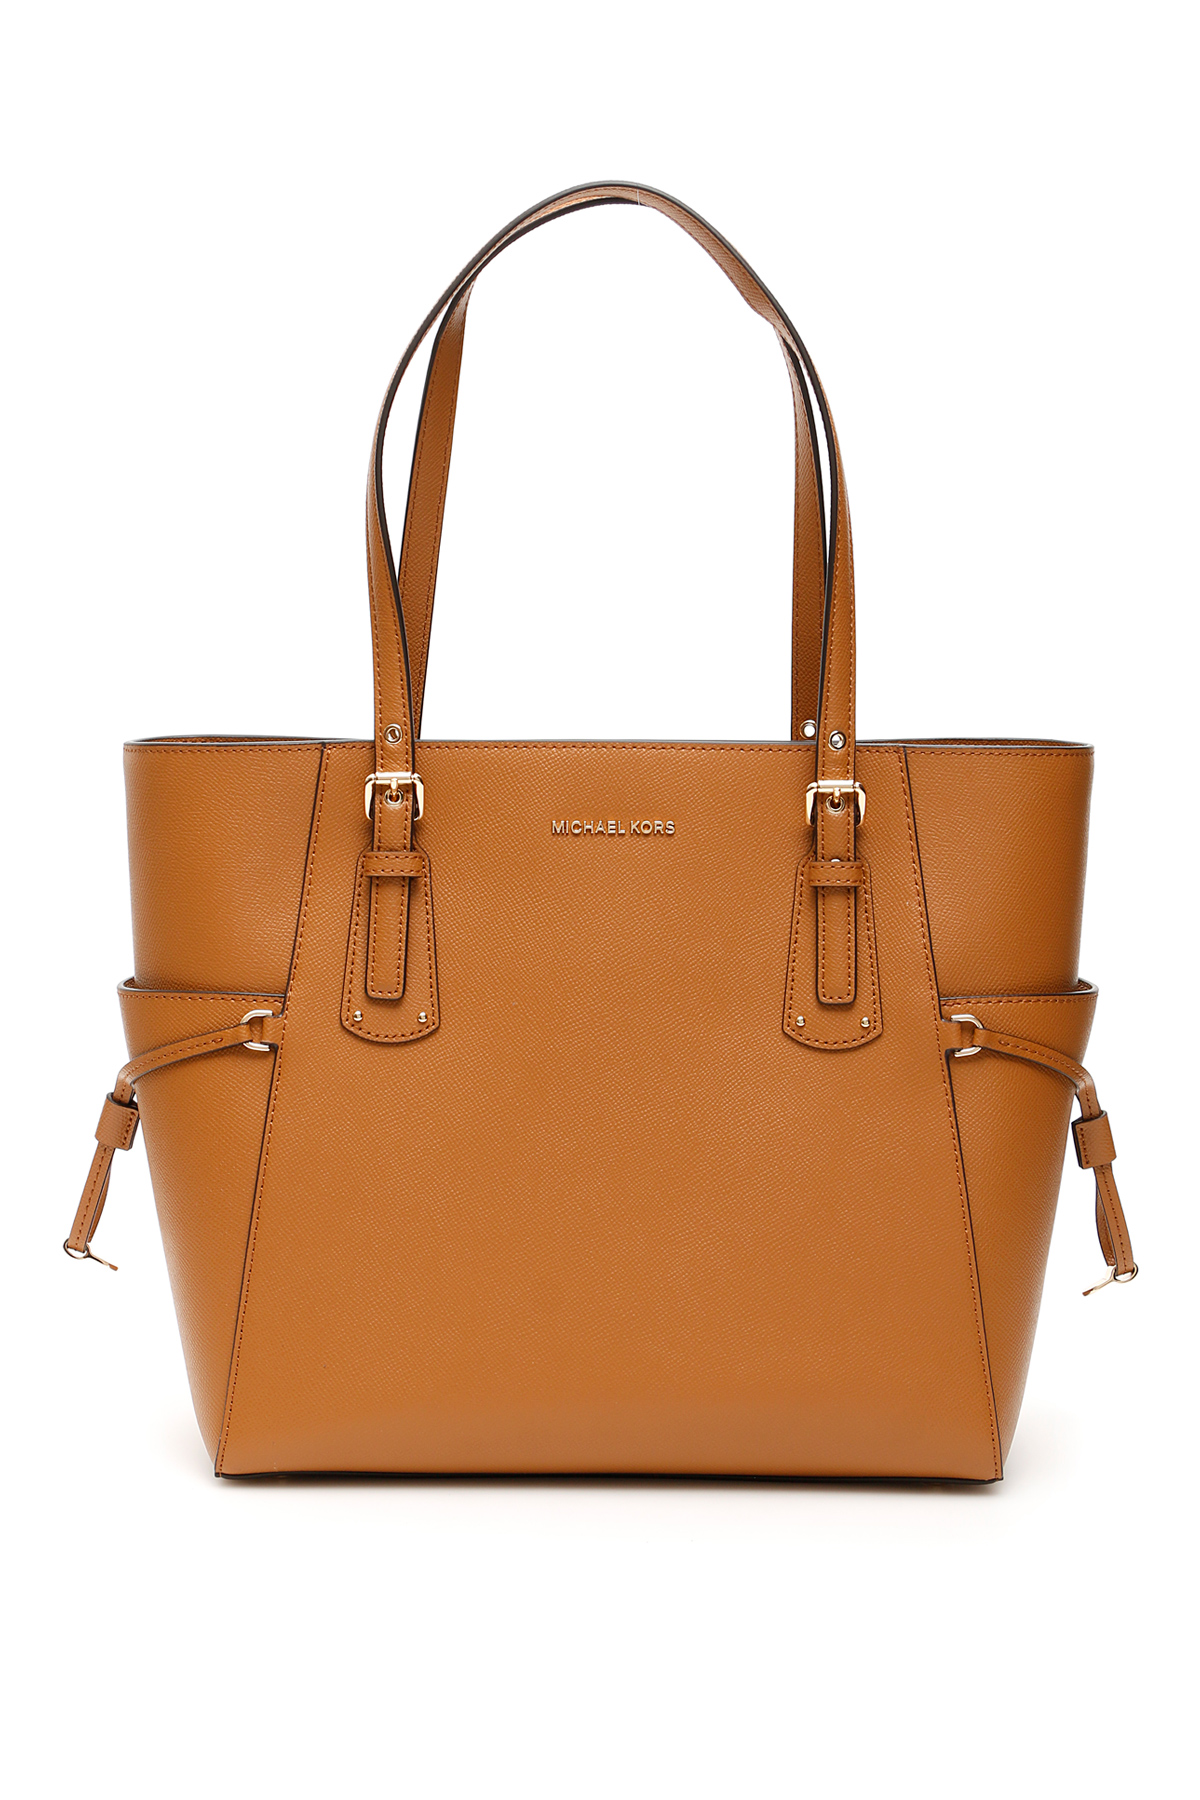 MICHAEL MICHAEL KORS VOYAGER LEATHER TOTE BAG OS Brown Leather